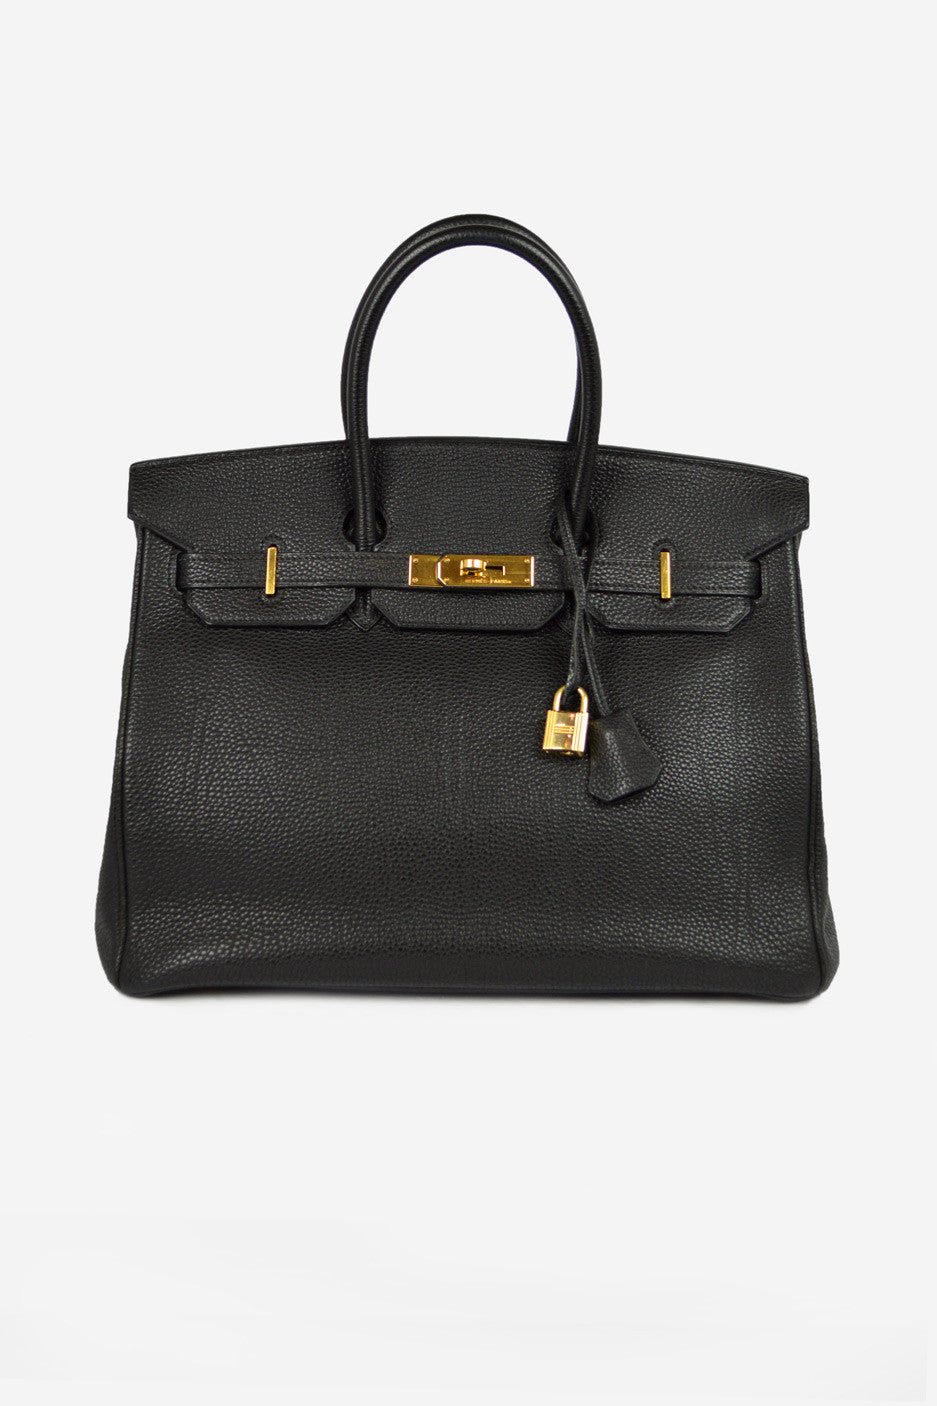 Black Togo Leather Birkin 35 GHW